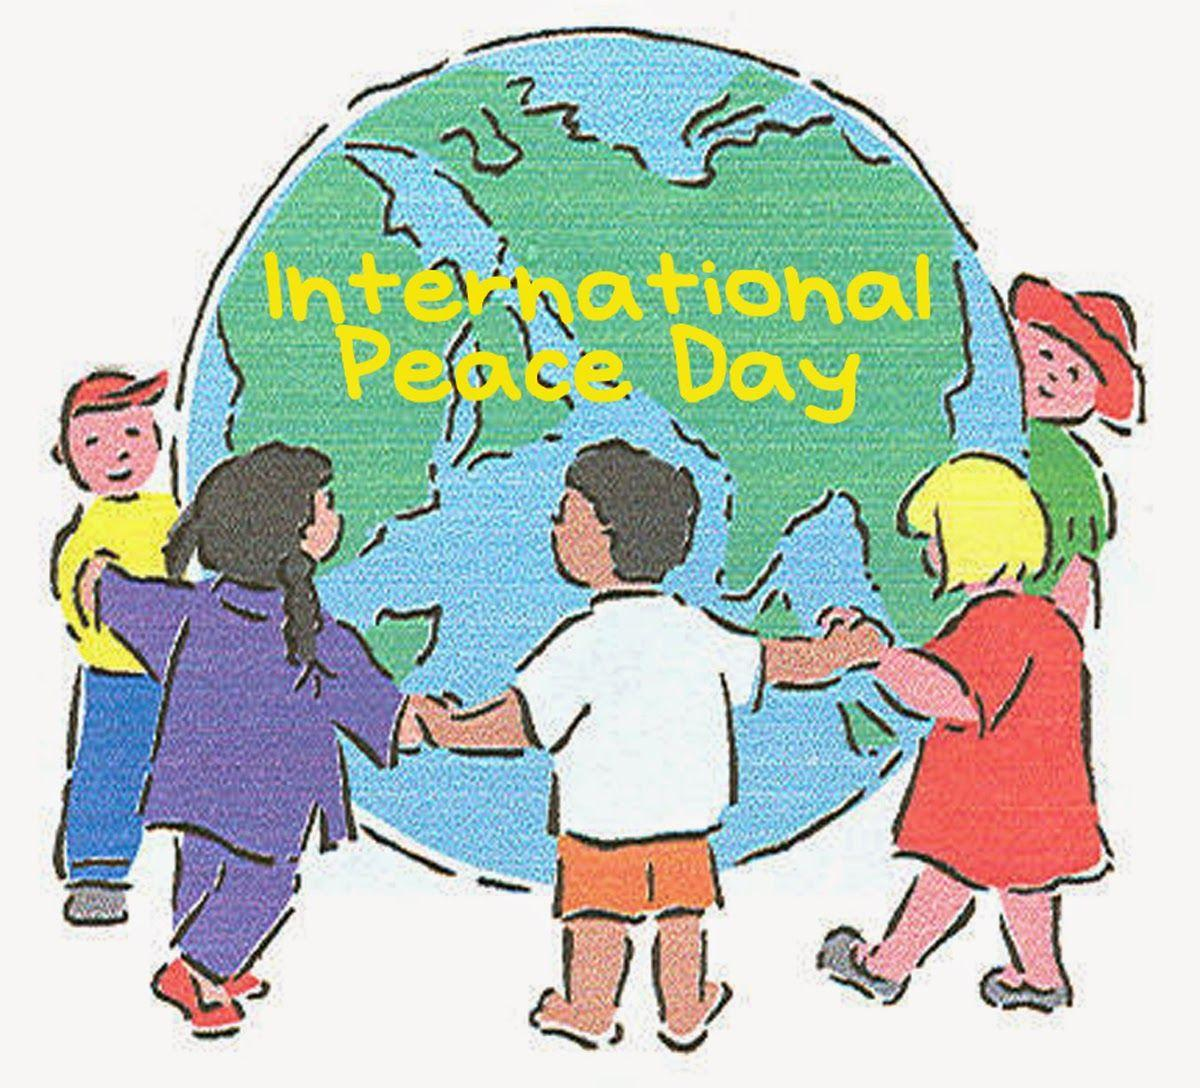 Moments of Introspection: Happy World Peace Day 2014